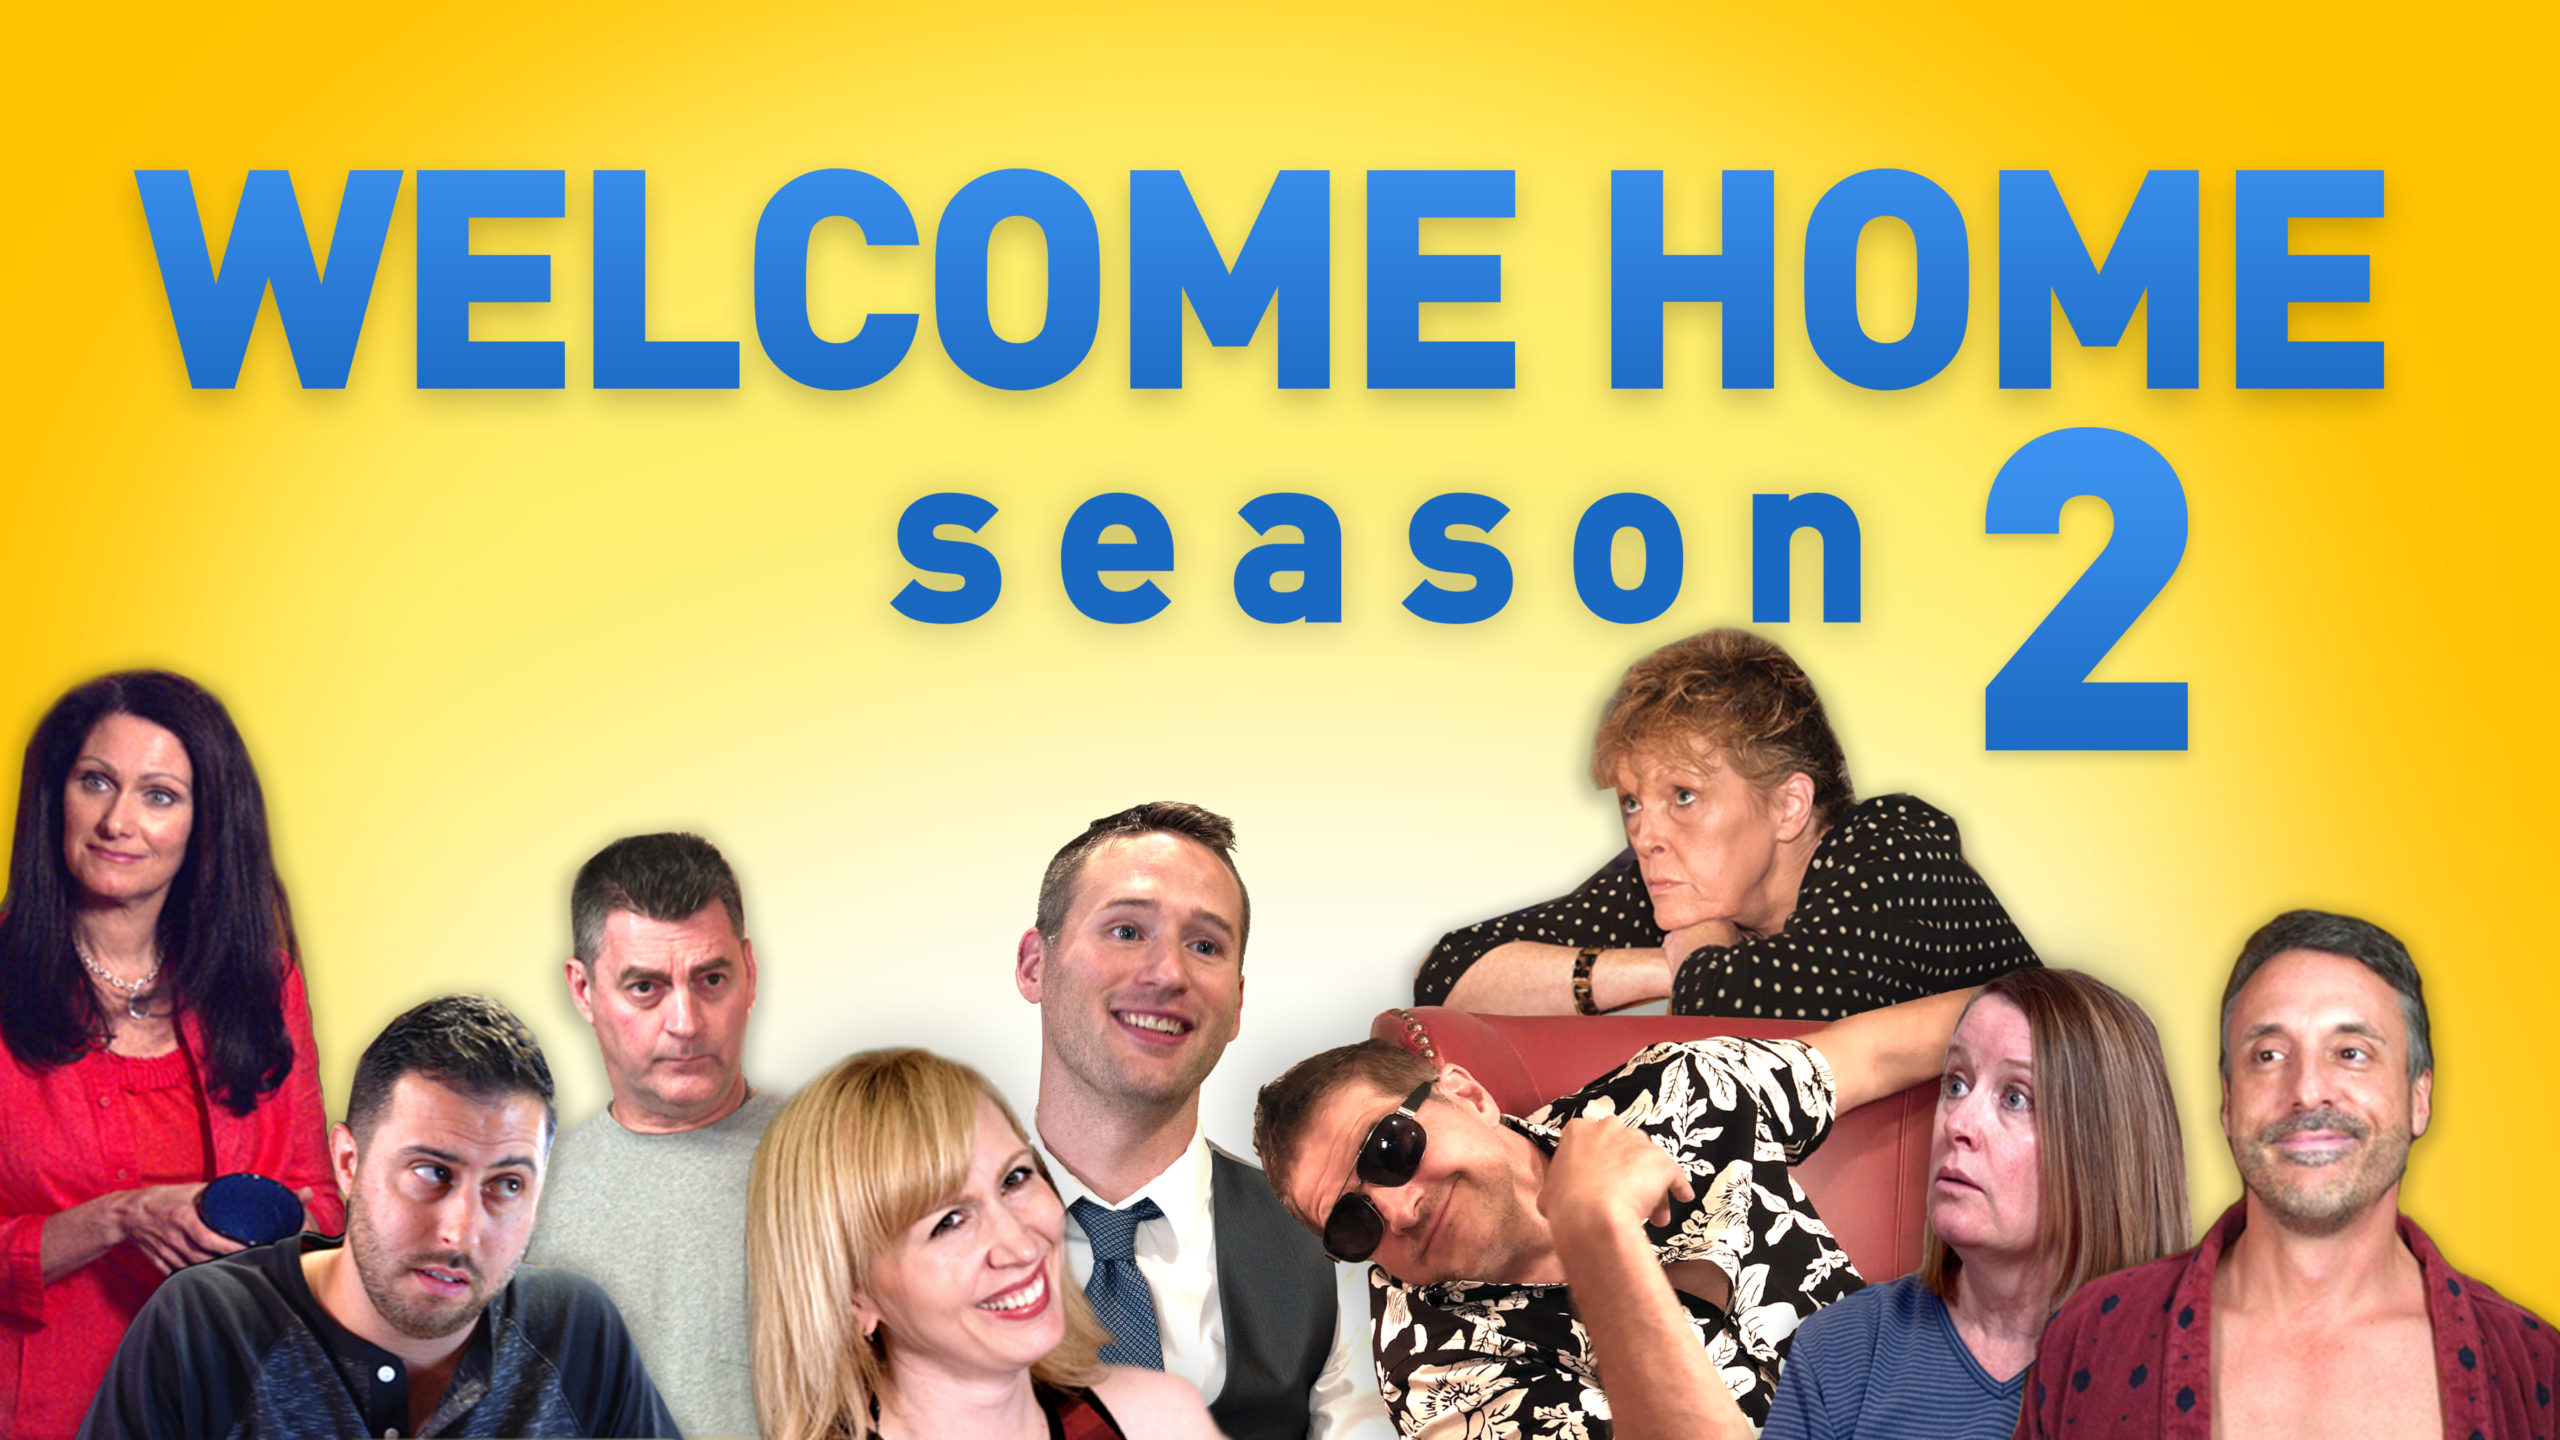 Watch Welcome Home Season 2 New Web Series All Episodes Streaming On Amazon Prime